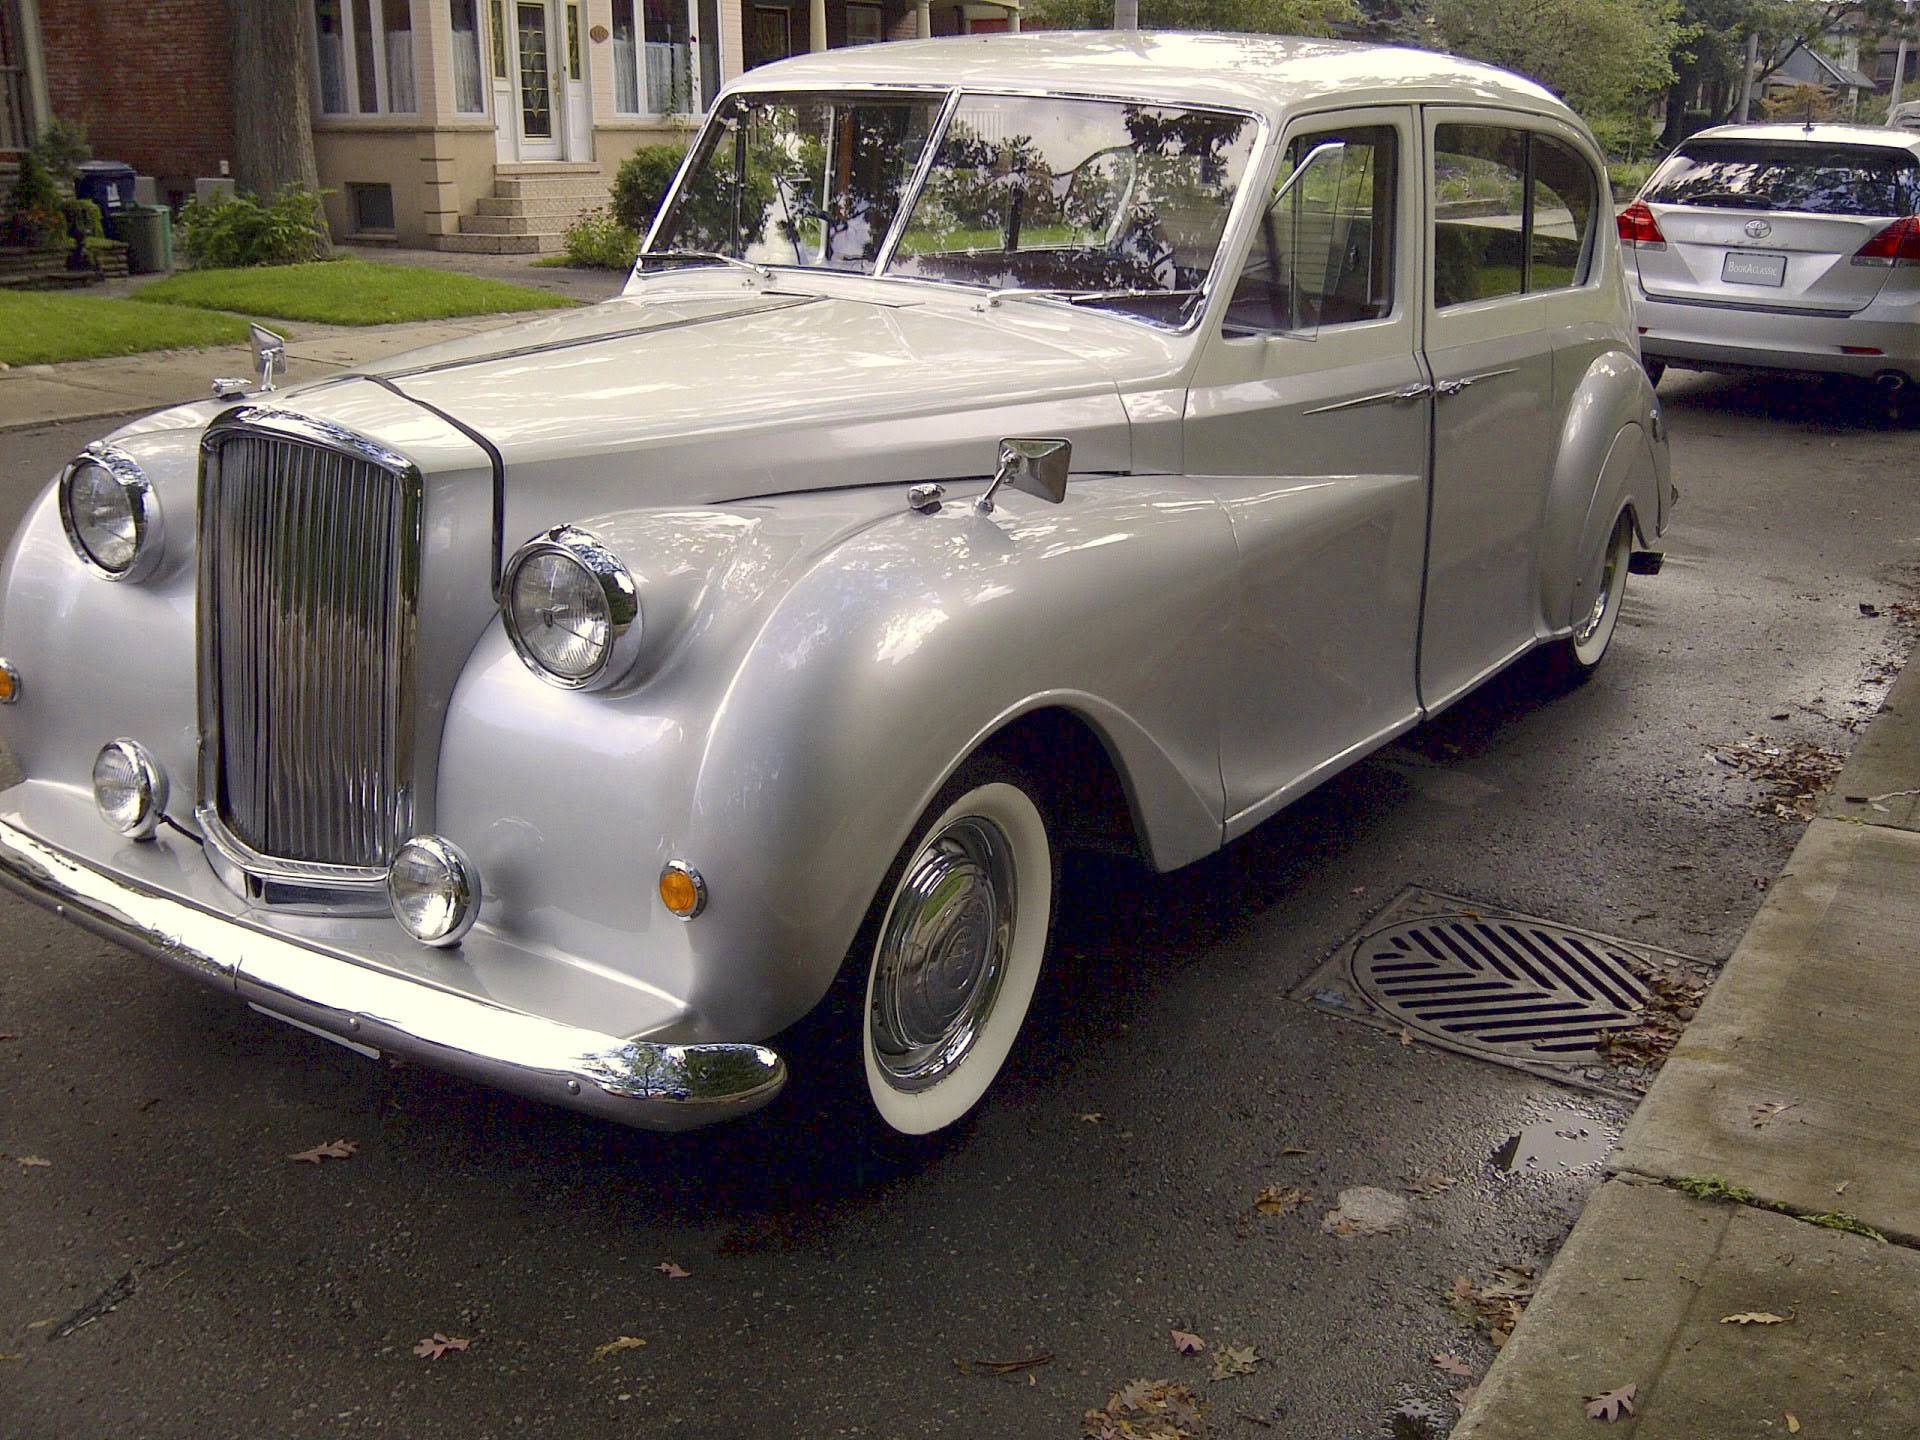 Classic Car Rental and Vintage Cars for Rent - BookAclassic.ca